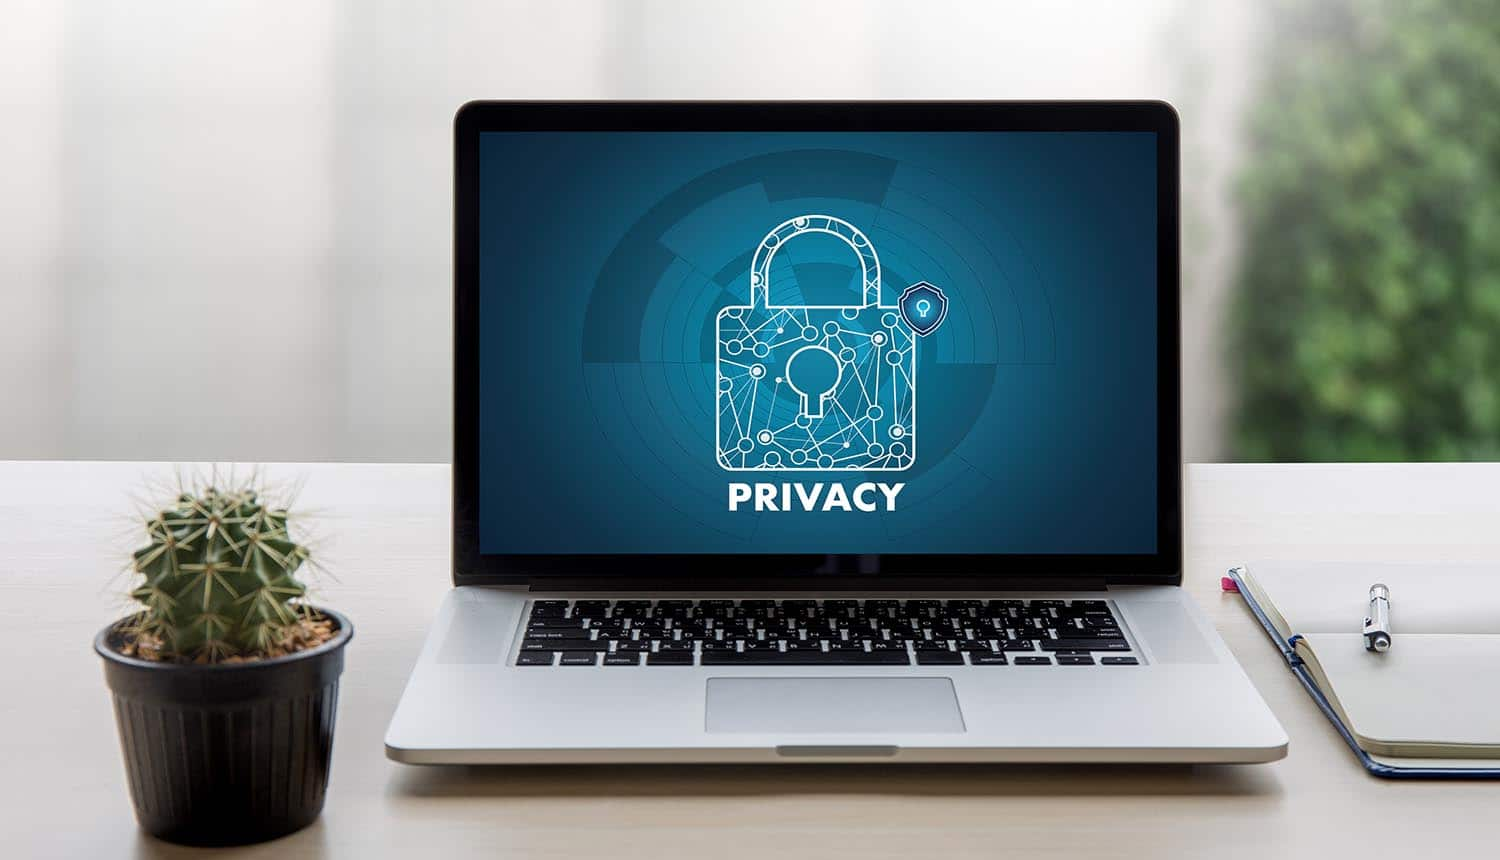 Privacy logo on laptop screen showing the interview with renown privacy expert on her perspectives on digital ethics and privacy